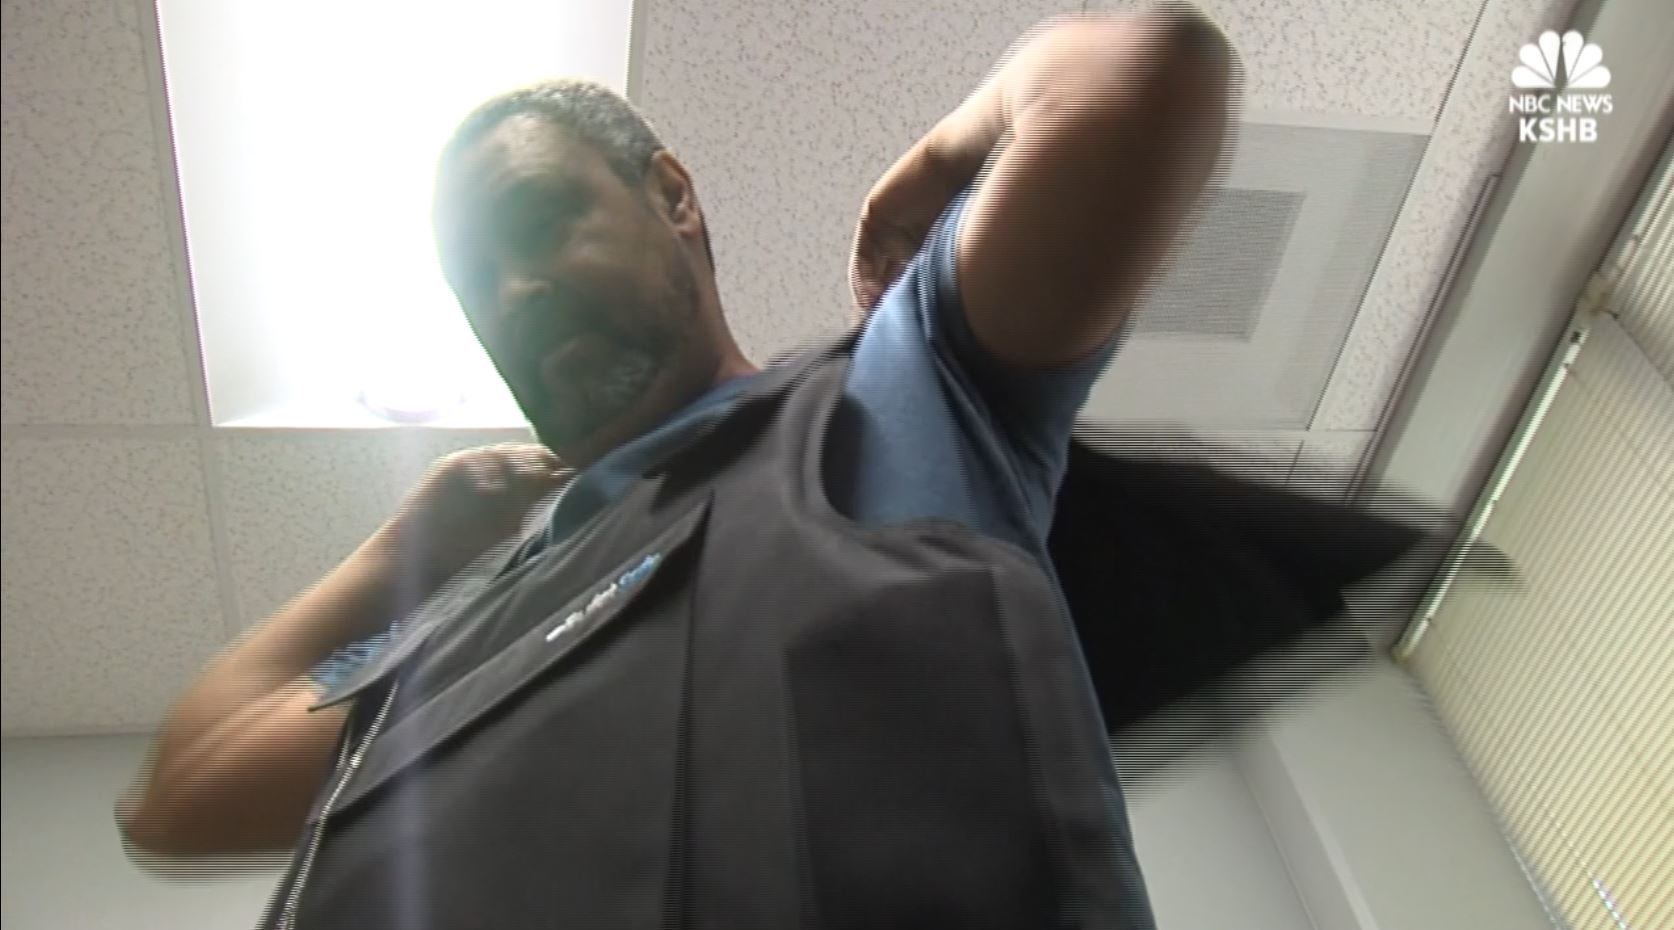 KU professor Kevin Wilmott wears a bulletproof vest to class every day to protest a new concealed carry law.